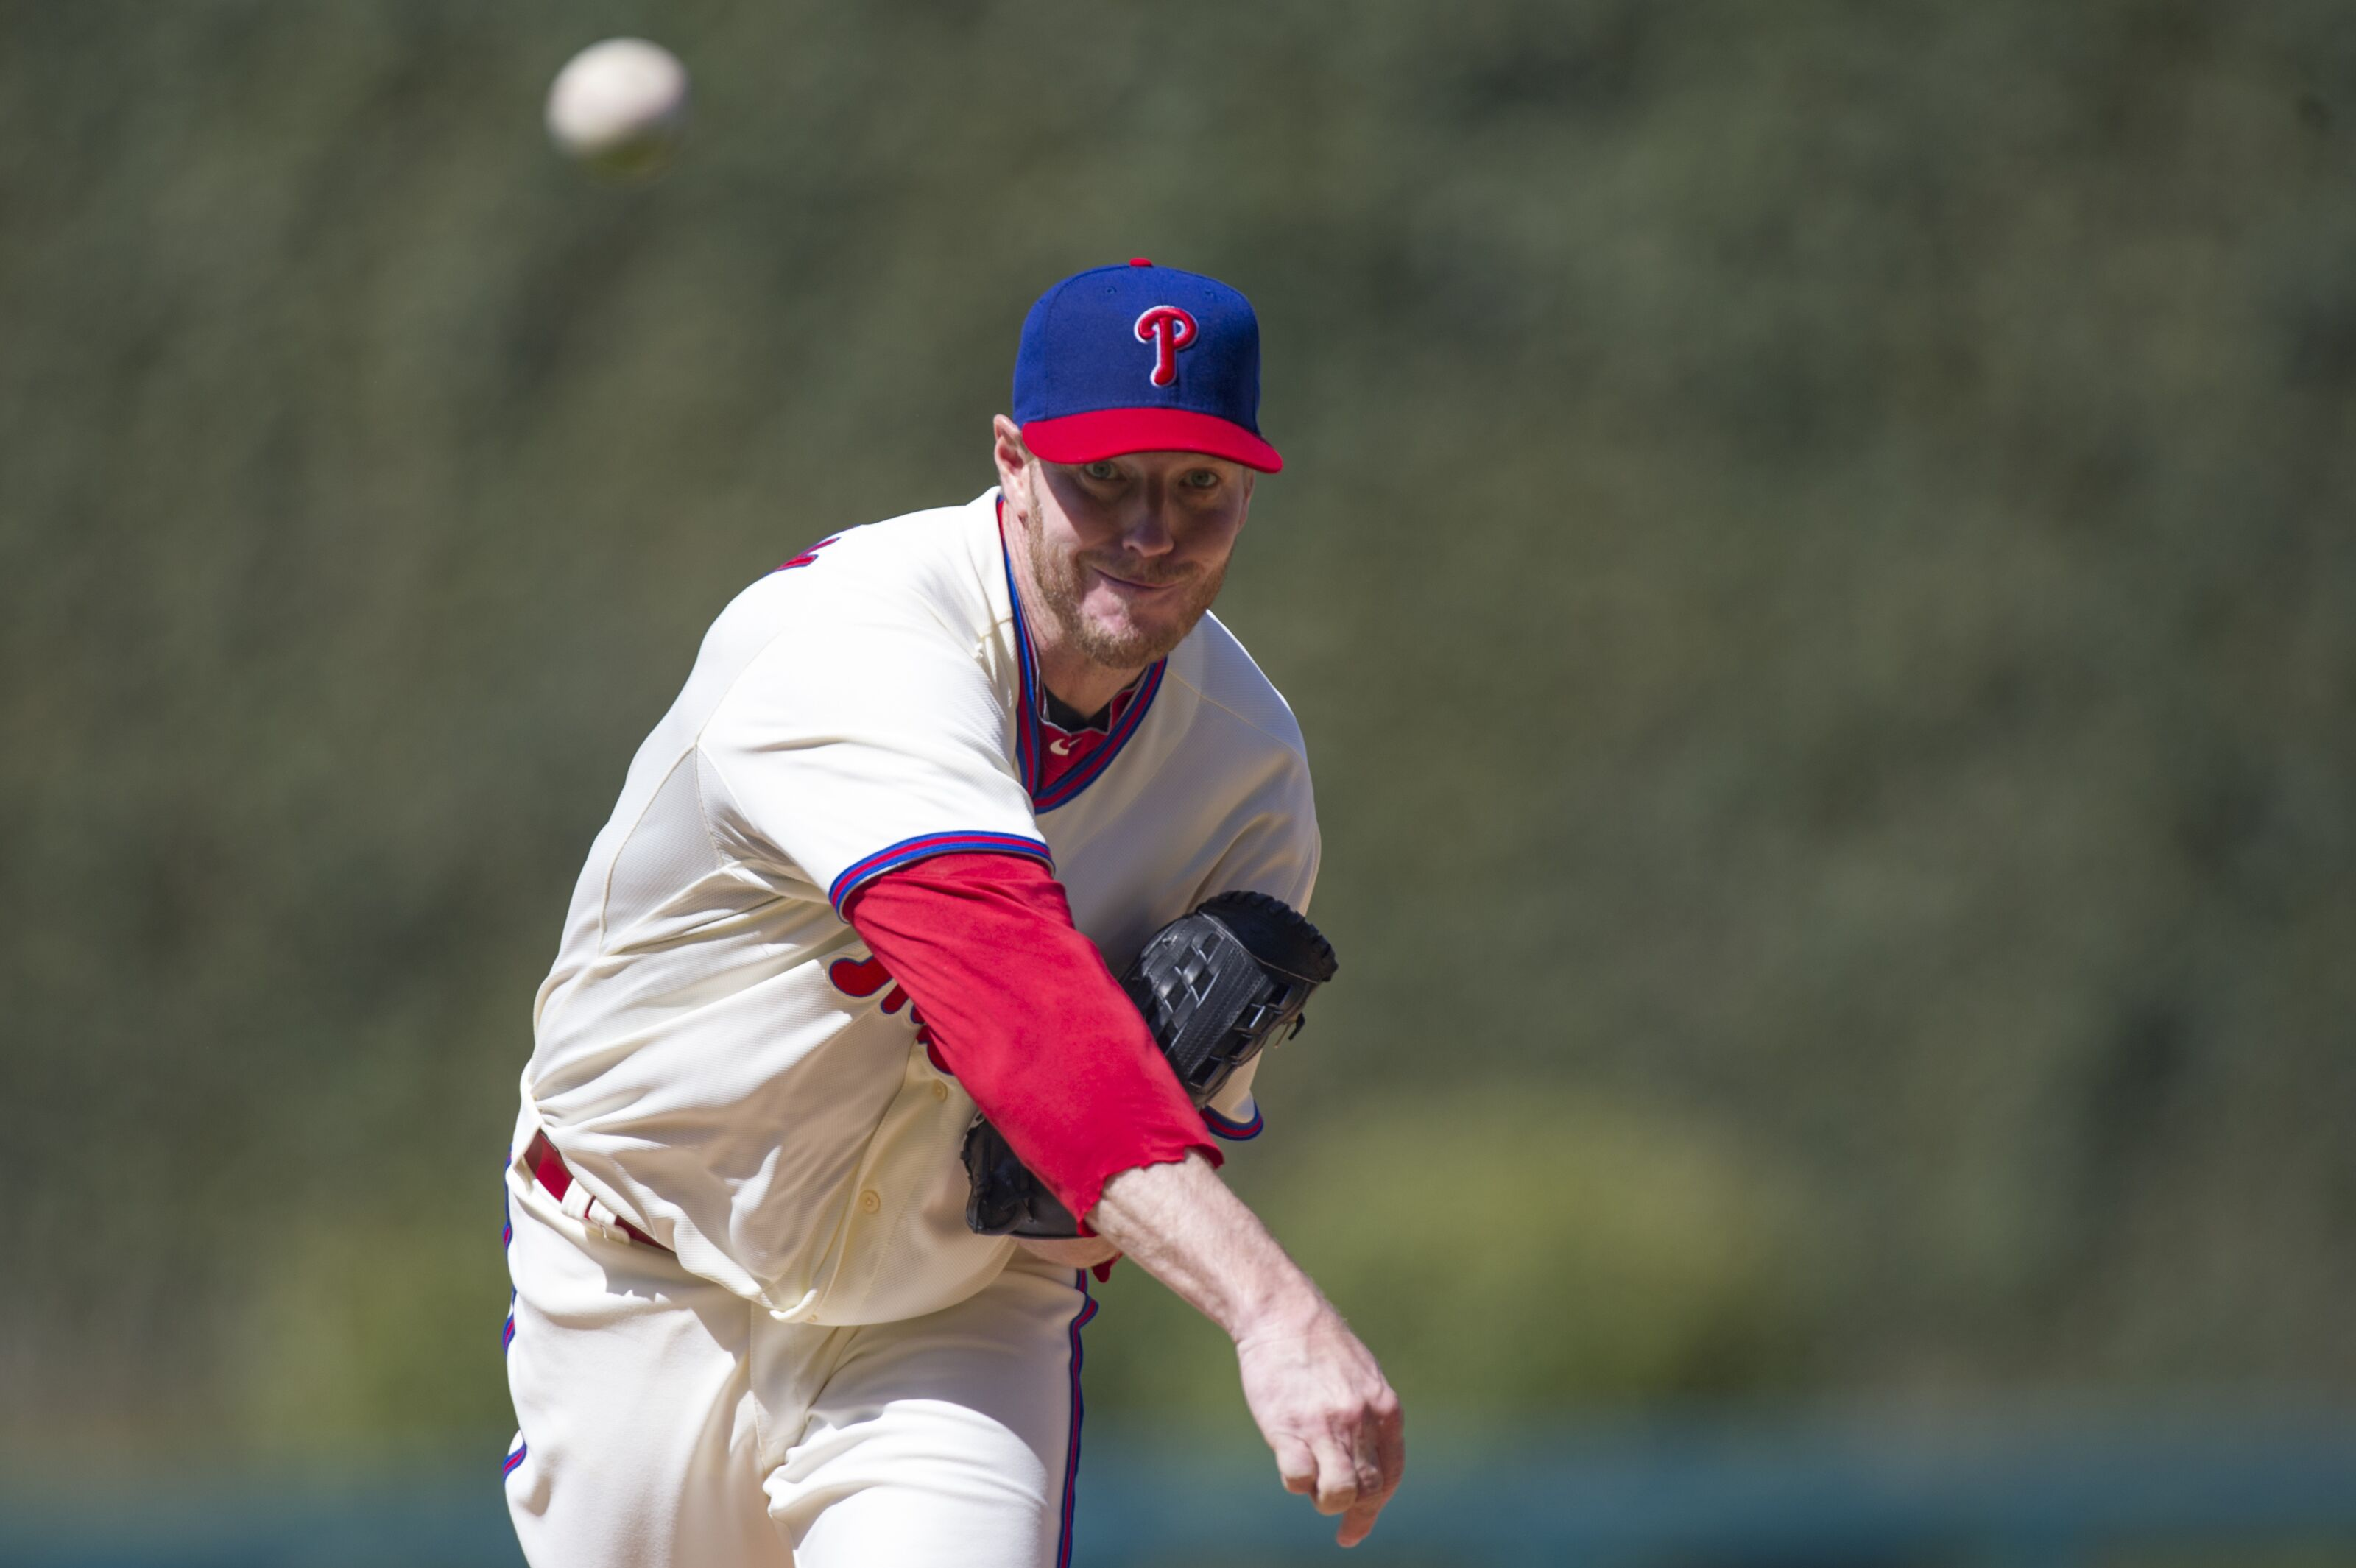 Roy Halladay shows Hall of Fame path isn't always pure